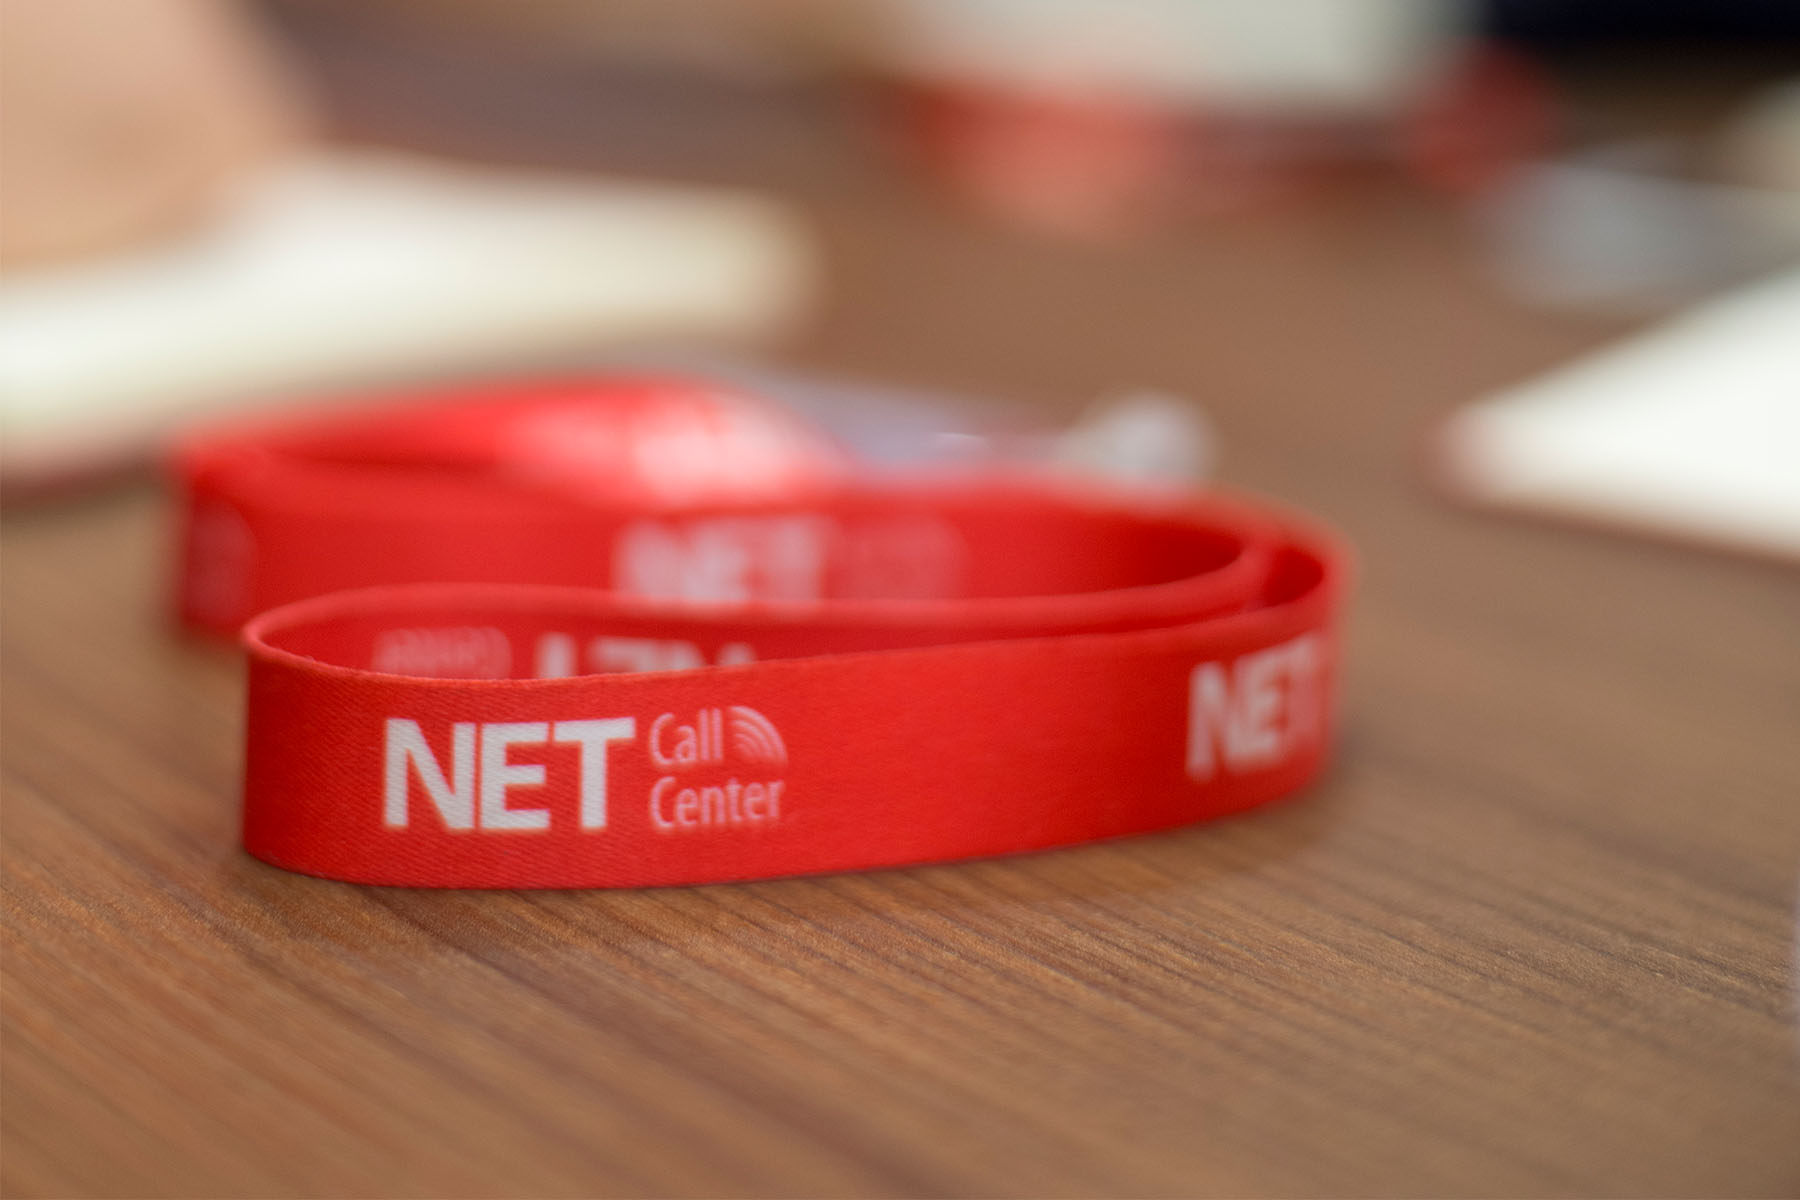 Net Call Center Referanslar